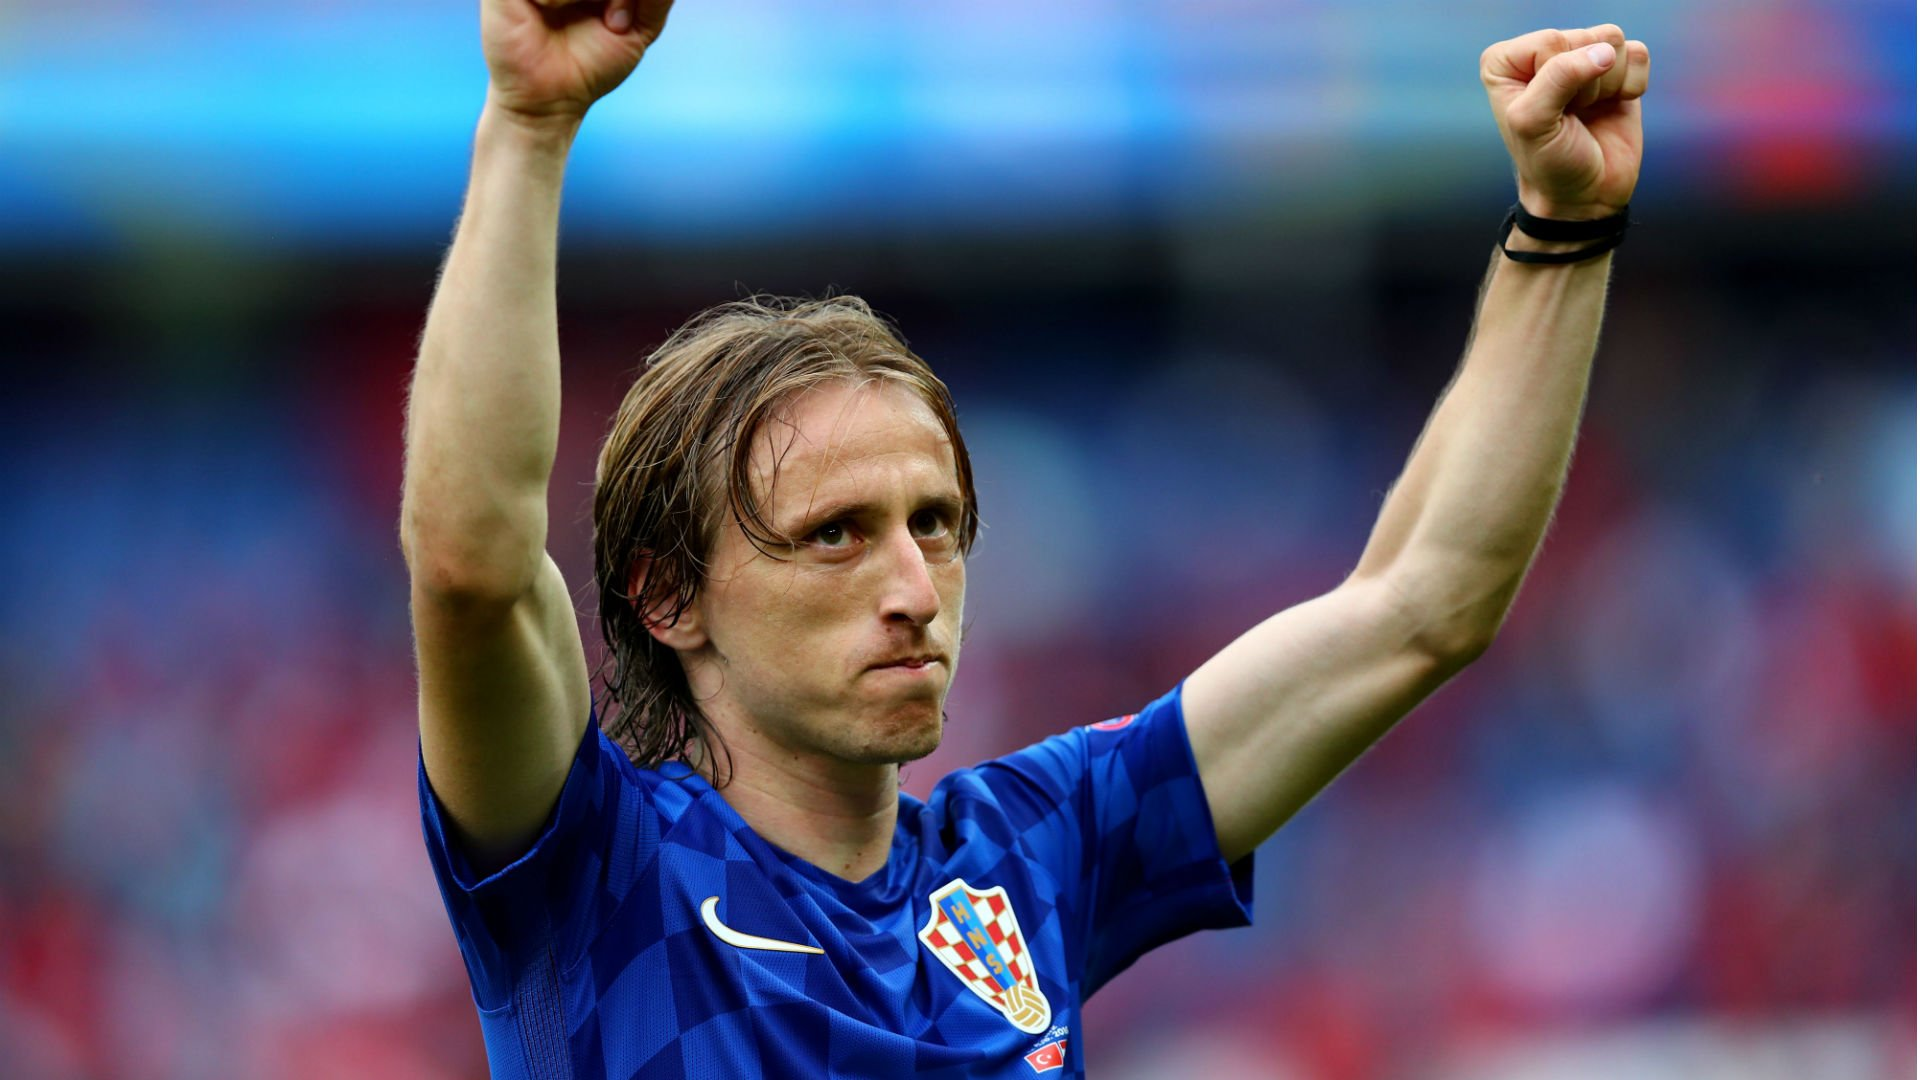 Luka Modric From Dodging Bombs To Dodging Tackles The Story